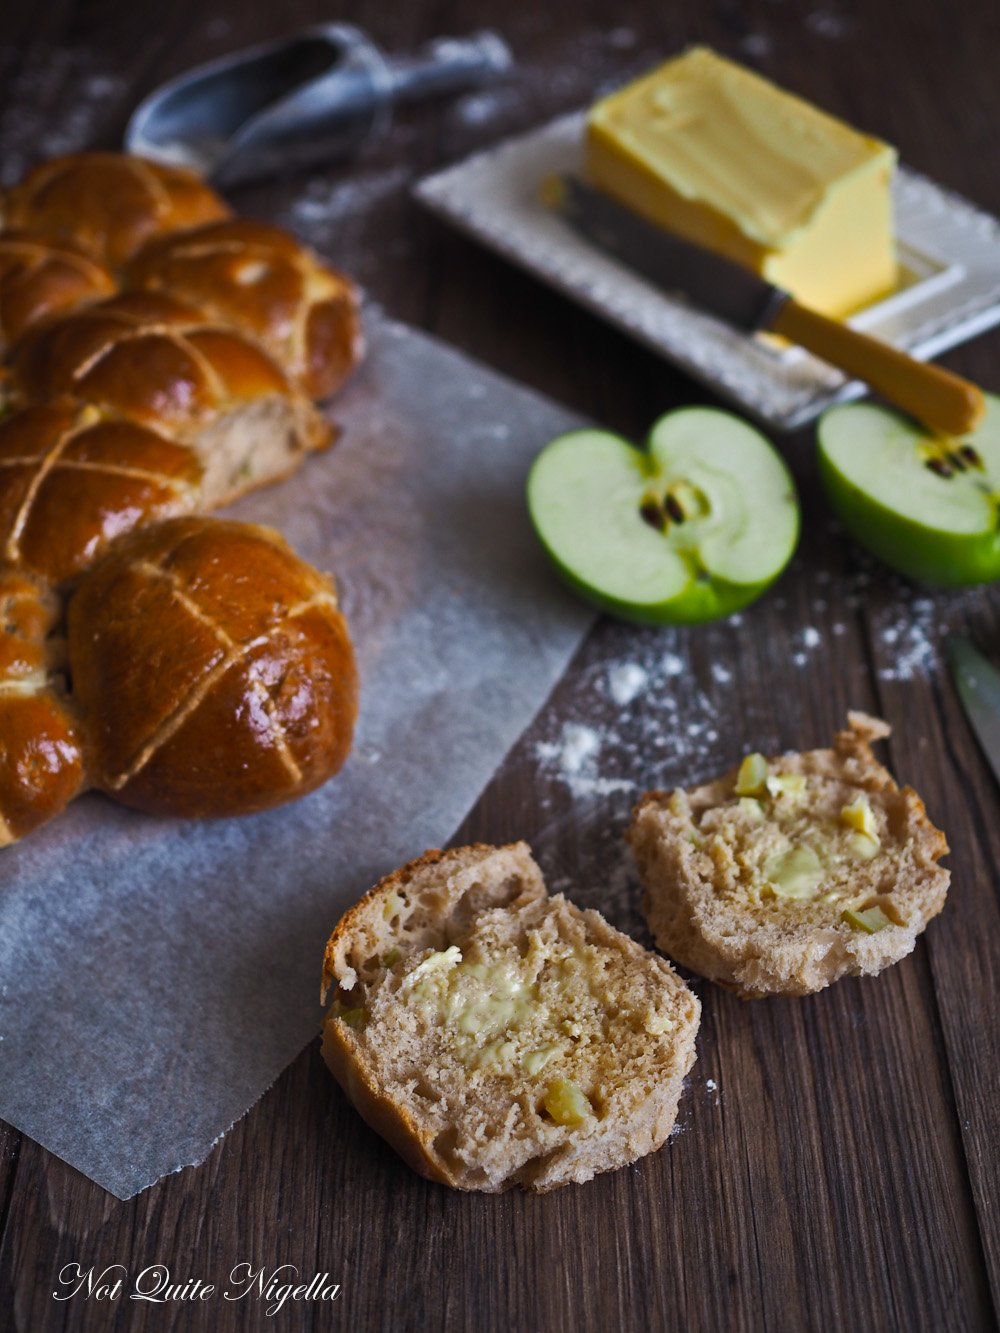 Apple Cinnamon Hot Cross Buns